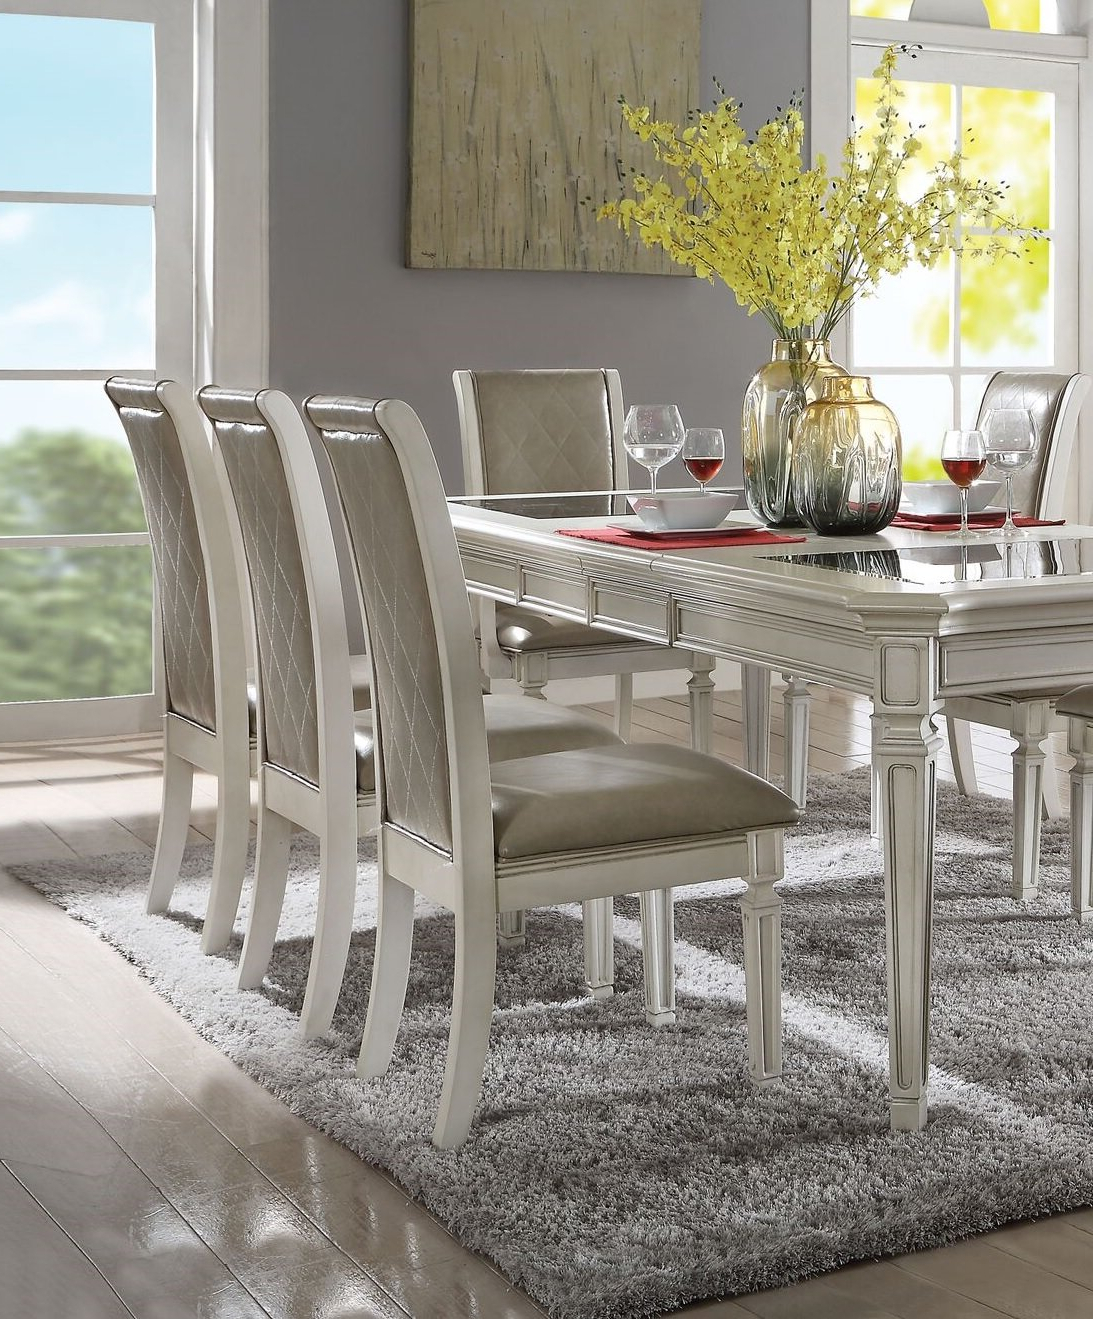 Fashionable Lamotte Upholstered Dining Chair For Lamotte 5 Piece Dining Sets (View 10 of 20)